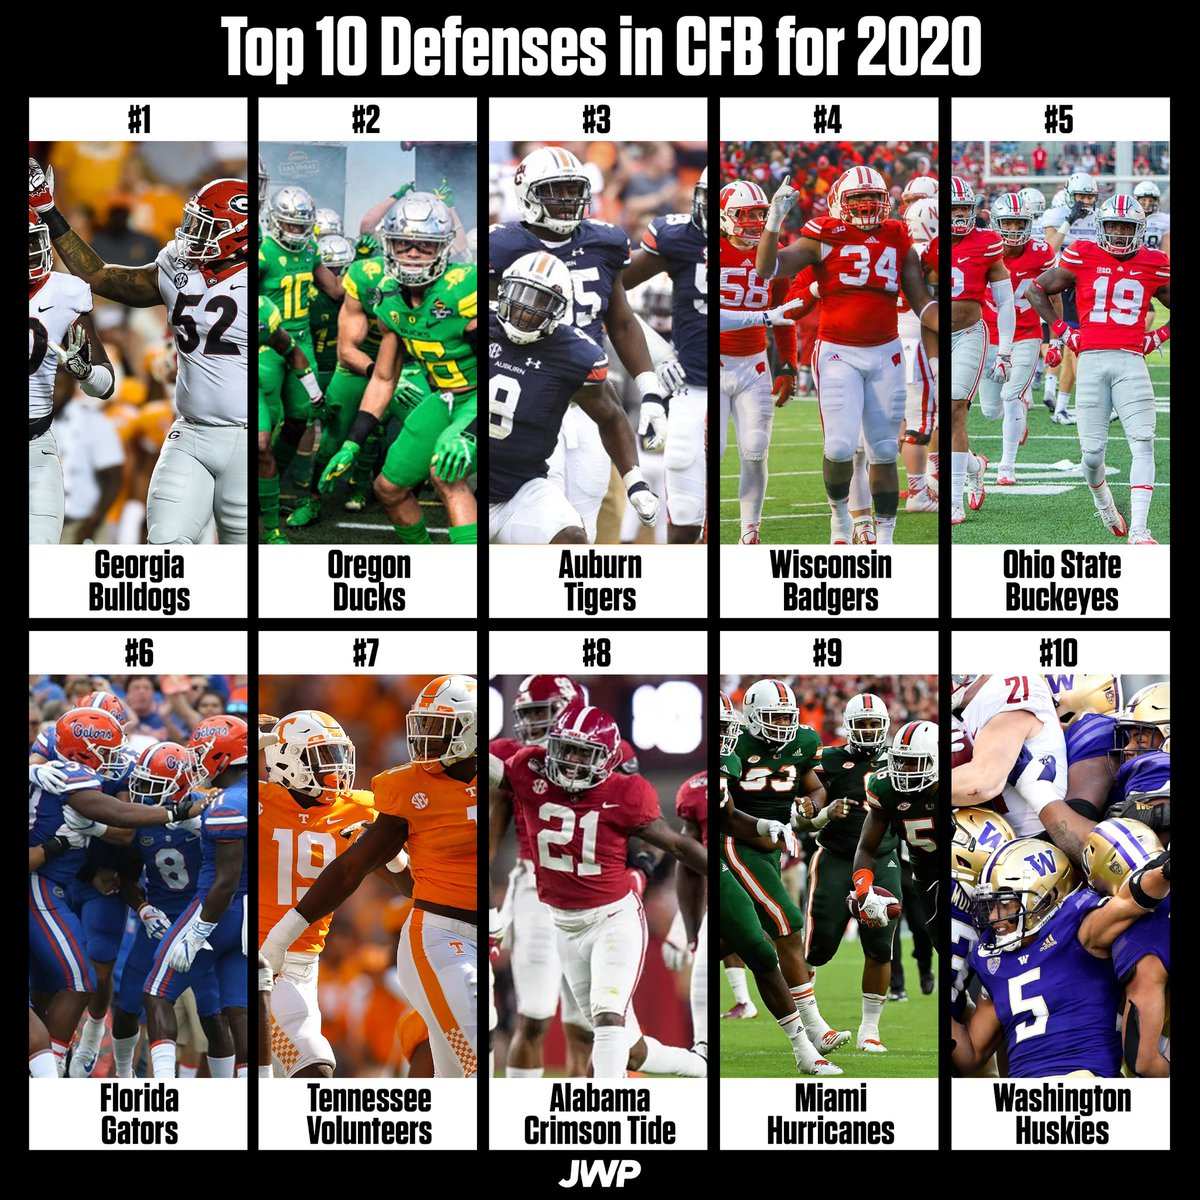 247 Sports released their top 10 defenses for the 2020 #CollegeFootball season. Do you agree or disagree?   1. #UGA  2. #Oregon 3. #Auburn 4. #Wisconsin 5. #OhioState 6. #Gators 7. #Vols 8. #Bama 9. #Canes 10. UWpic.twitter.com/BnMWemlbWA  by John William Perry